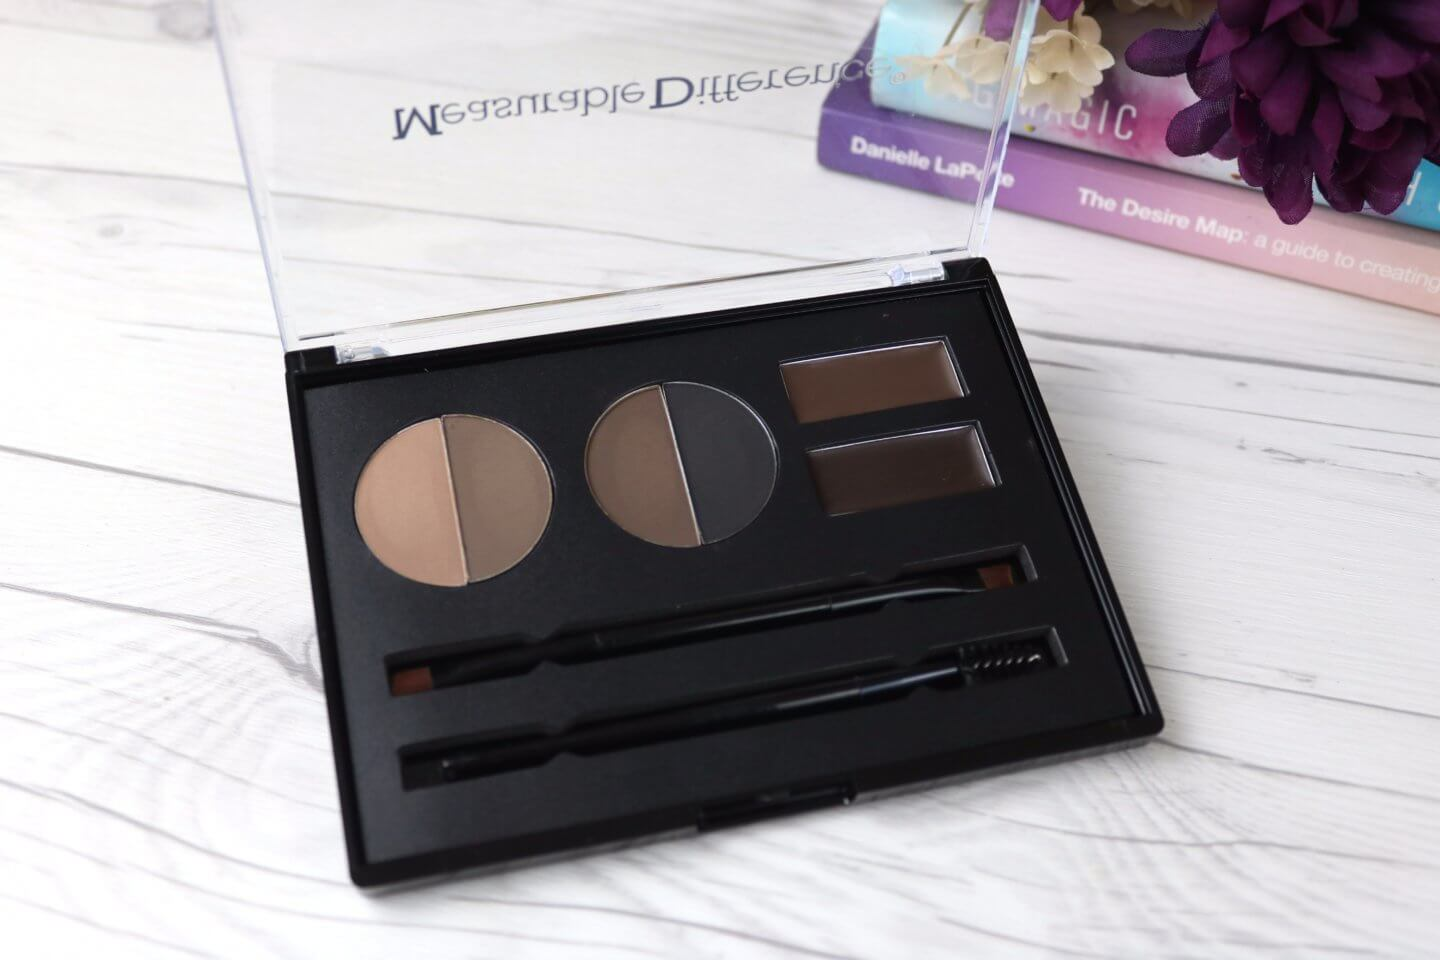 measurable-difference-eyebrow-framing-kit-review